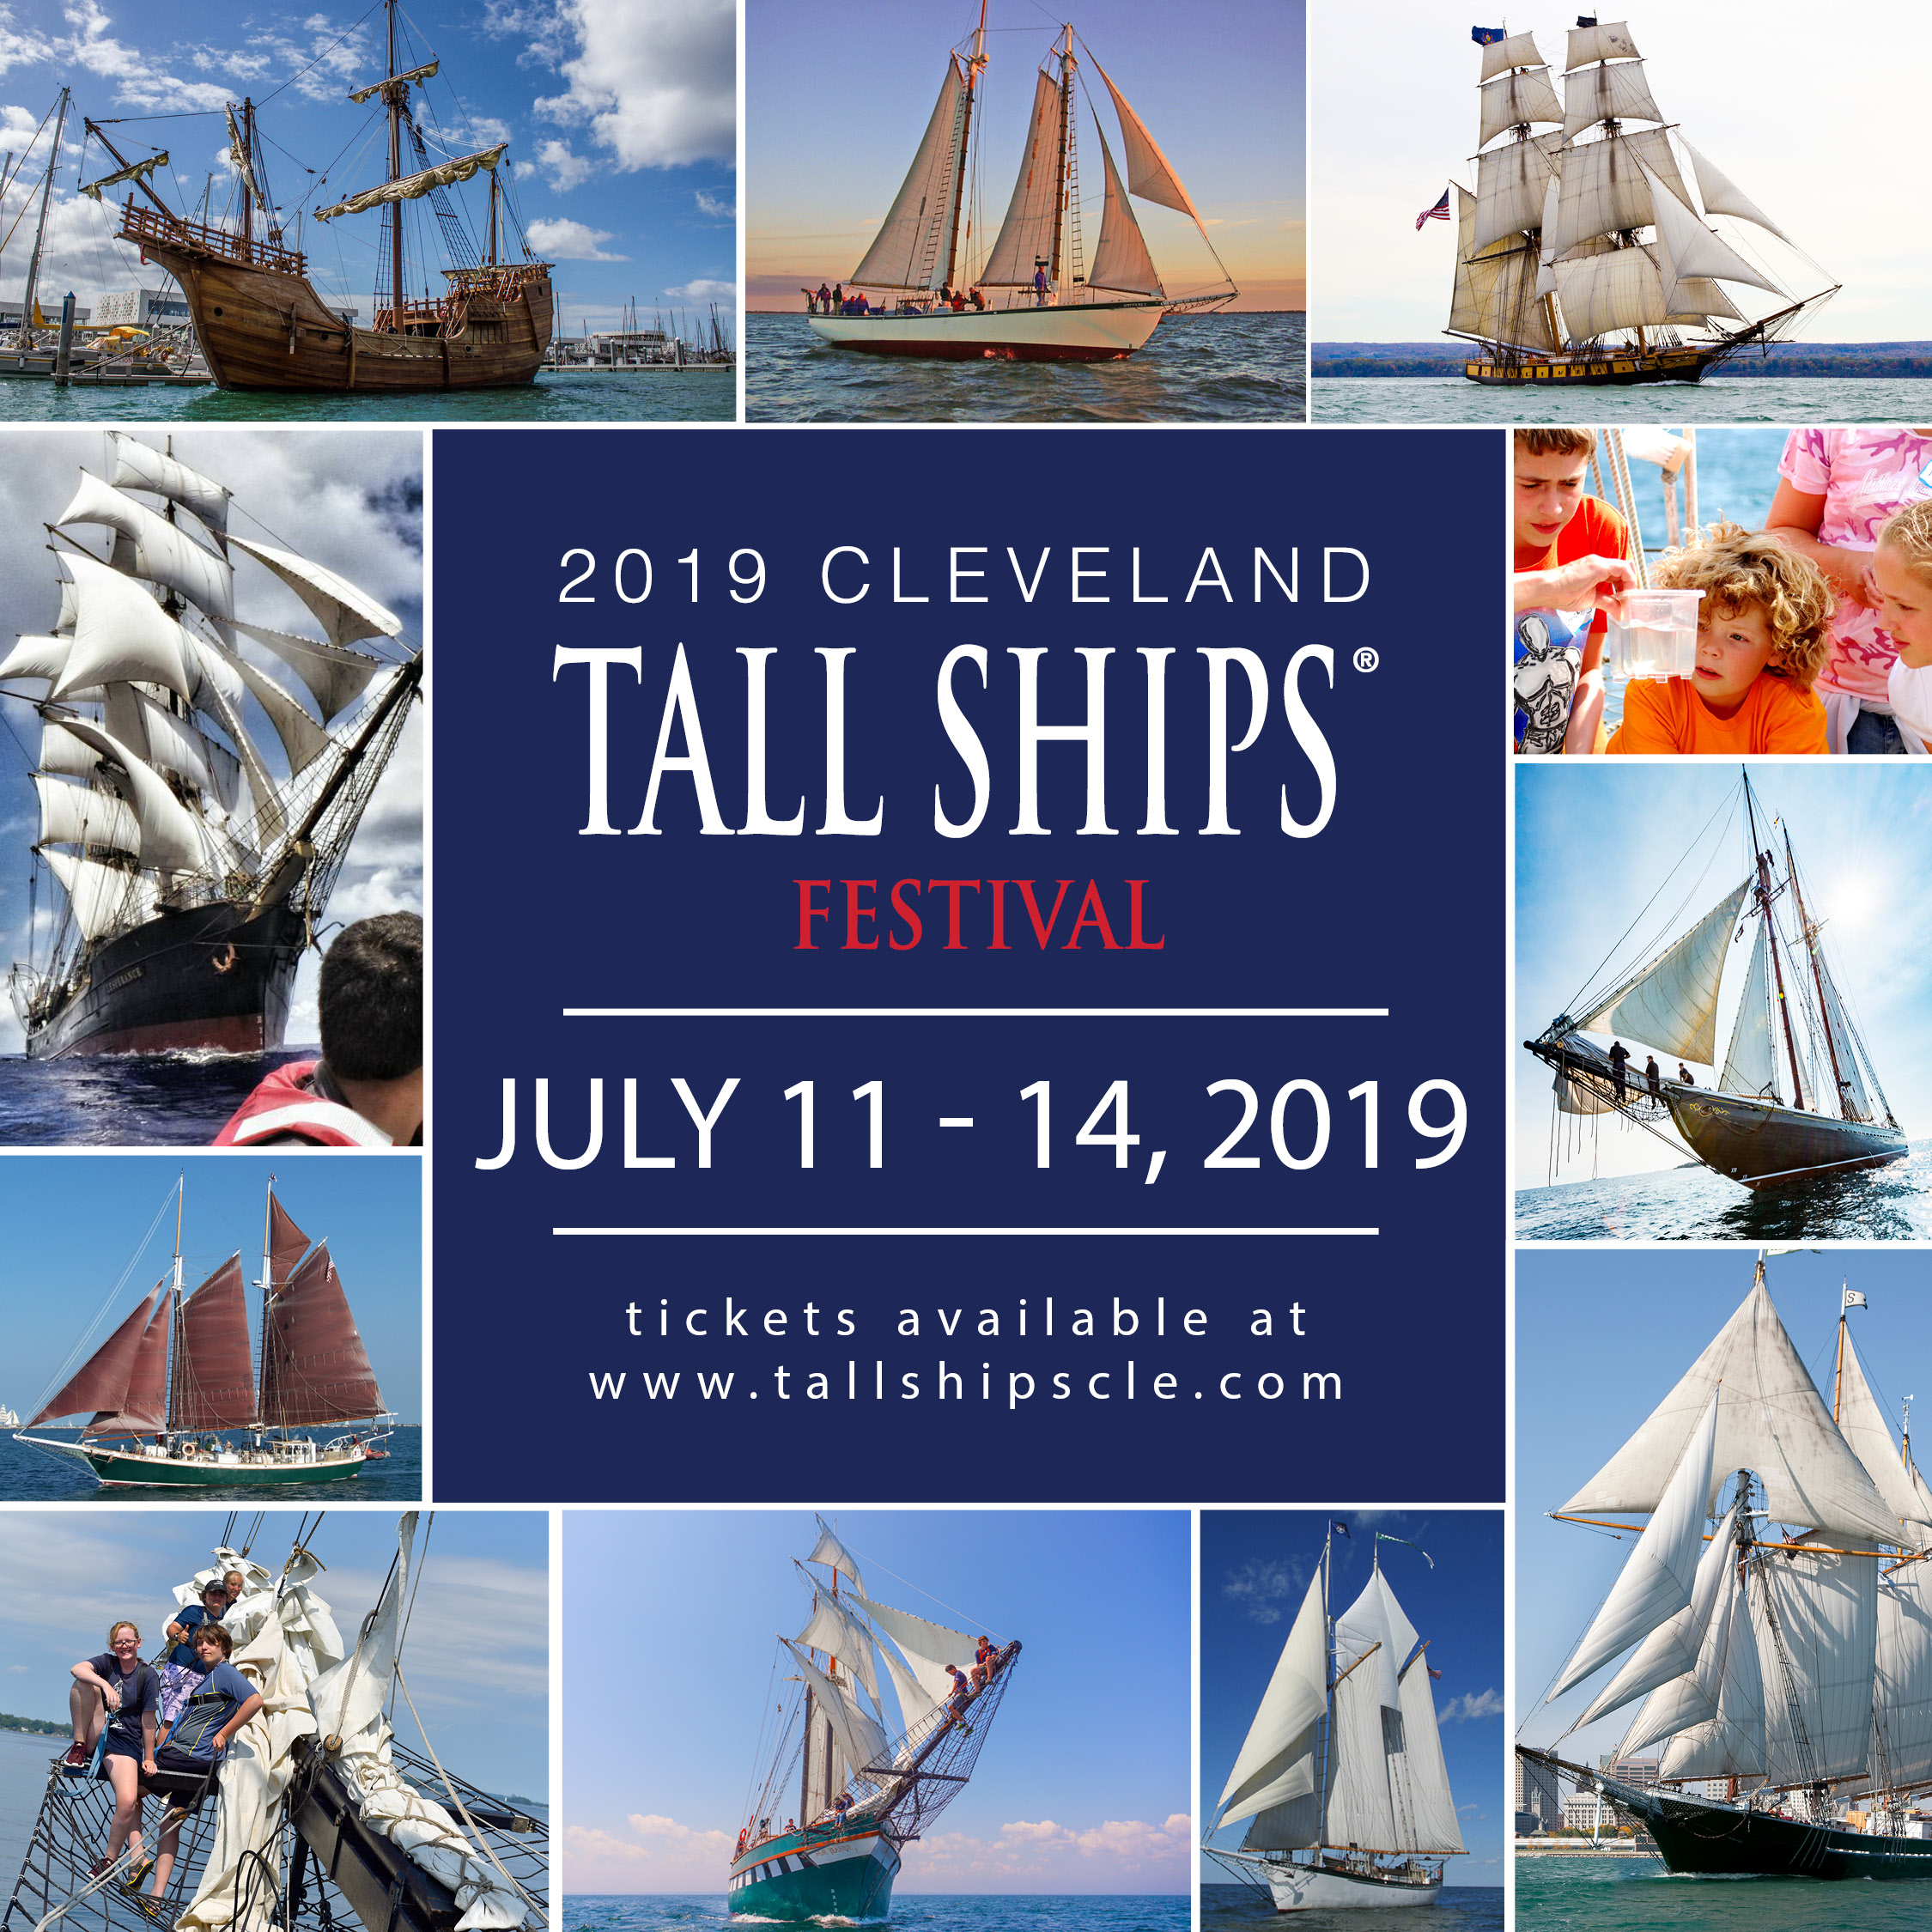 Instagram Tall Ships CLE_1080x1080.jpg